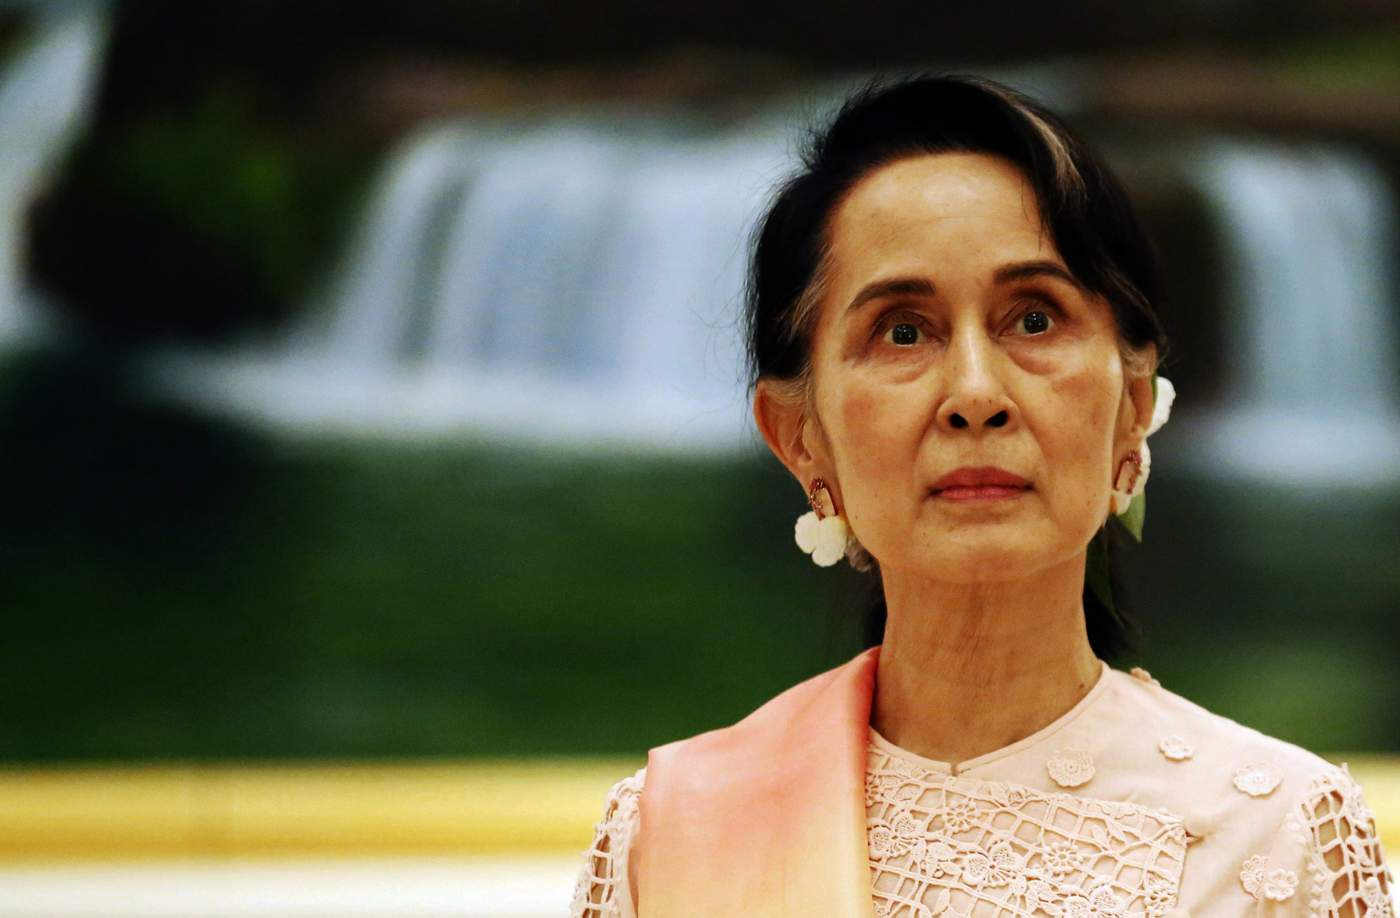 Amnesty International takes back its highest honor from Aung San Suu Kyi